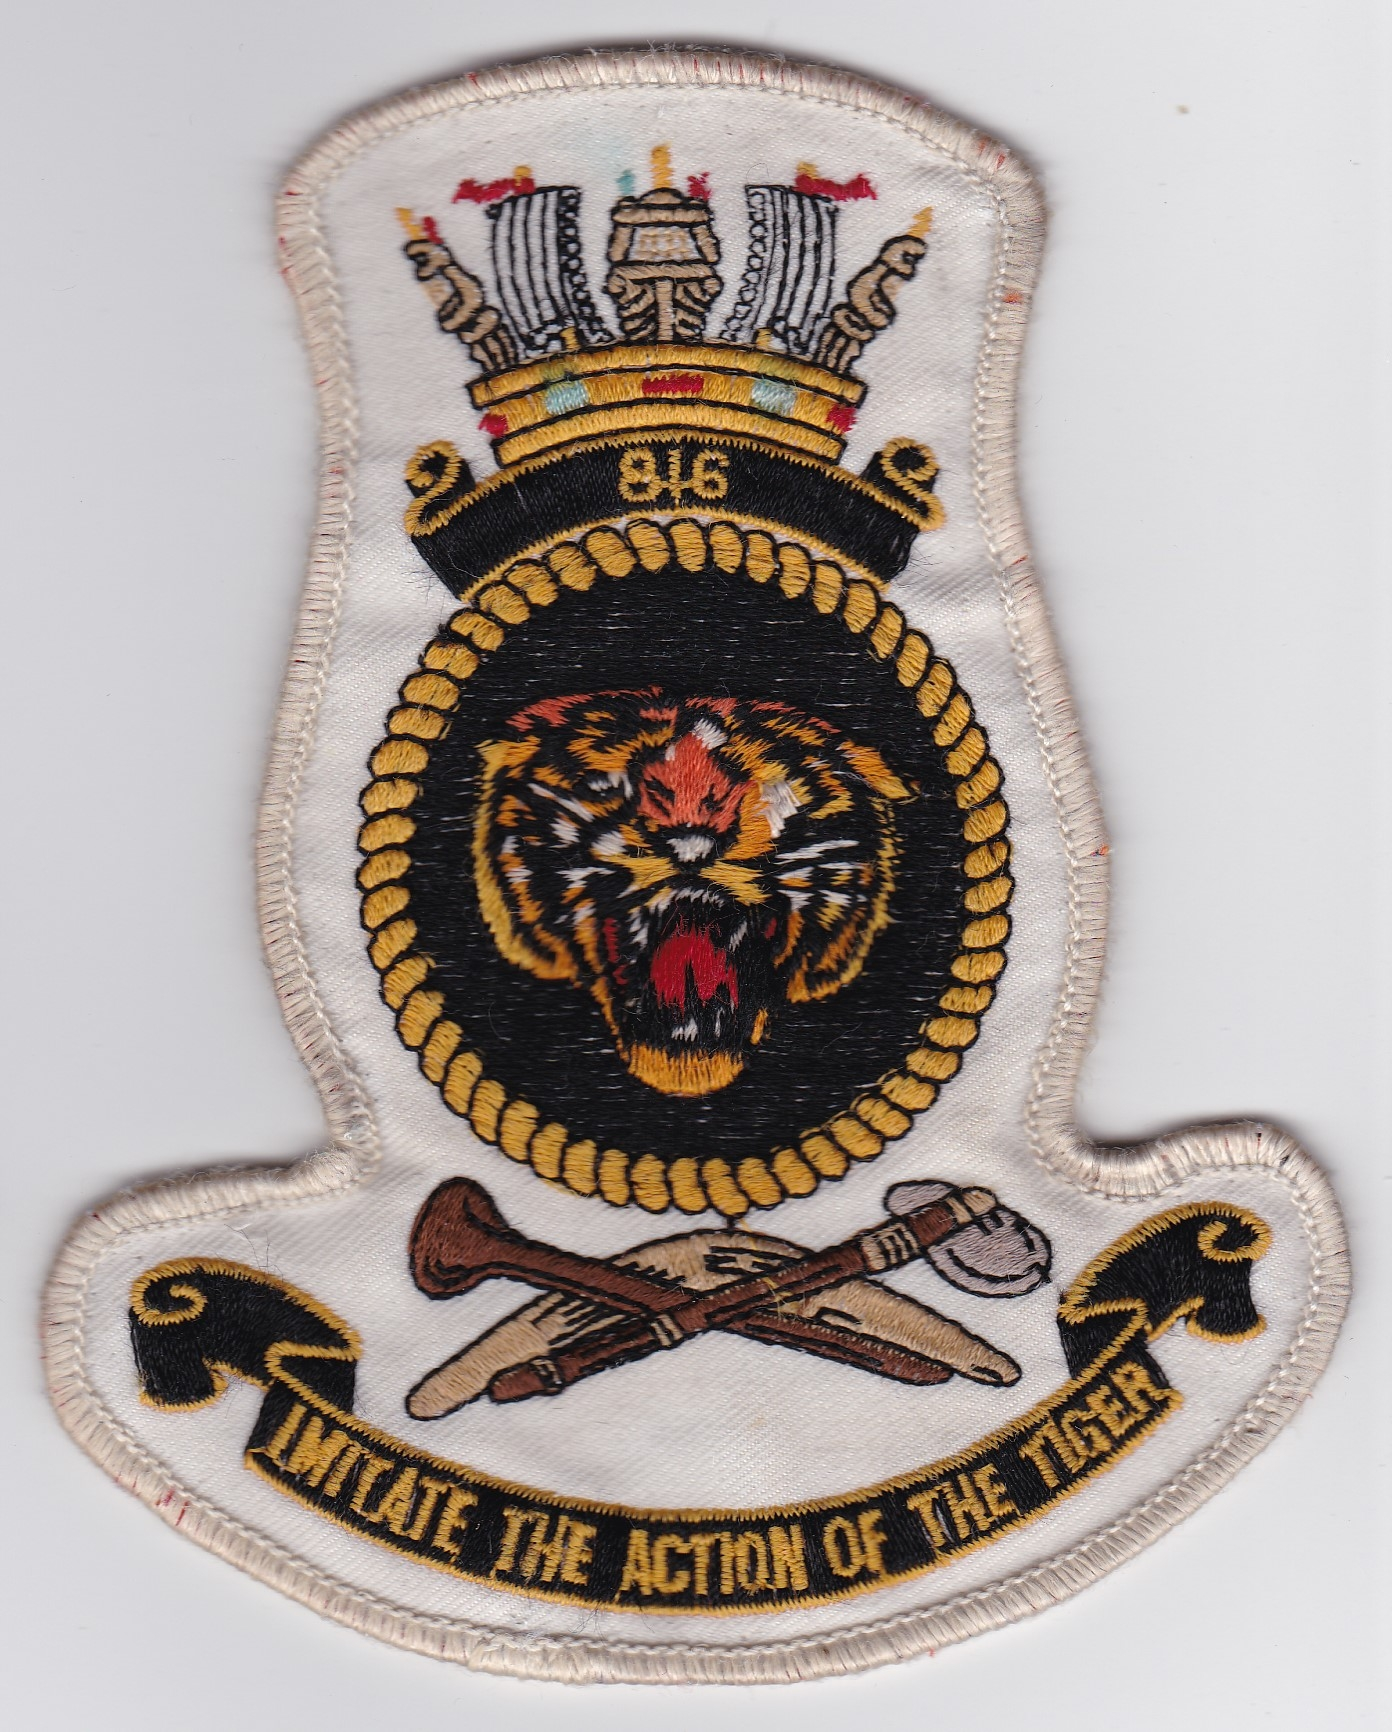 Australian Navy Fleet Air Arm Australian Navy Fleet Air